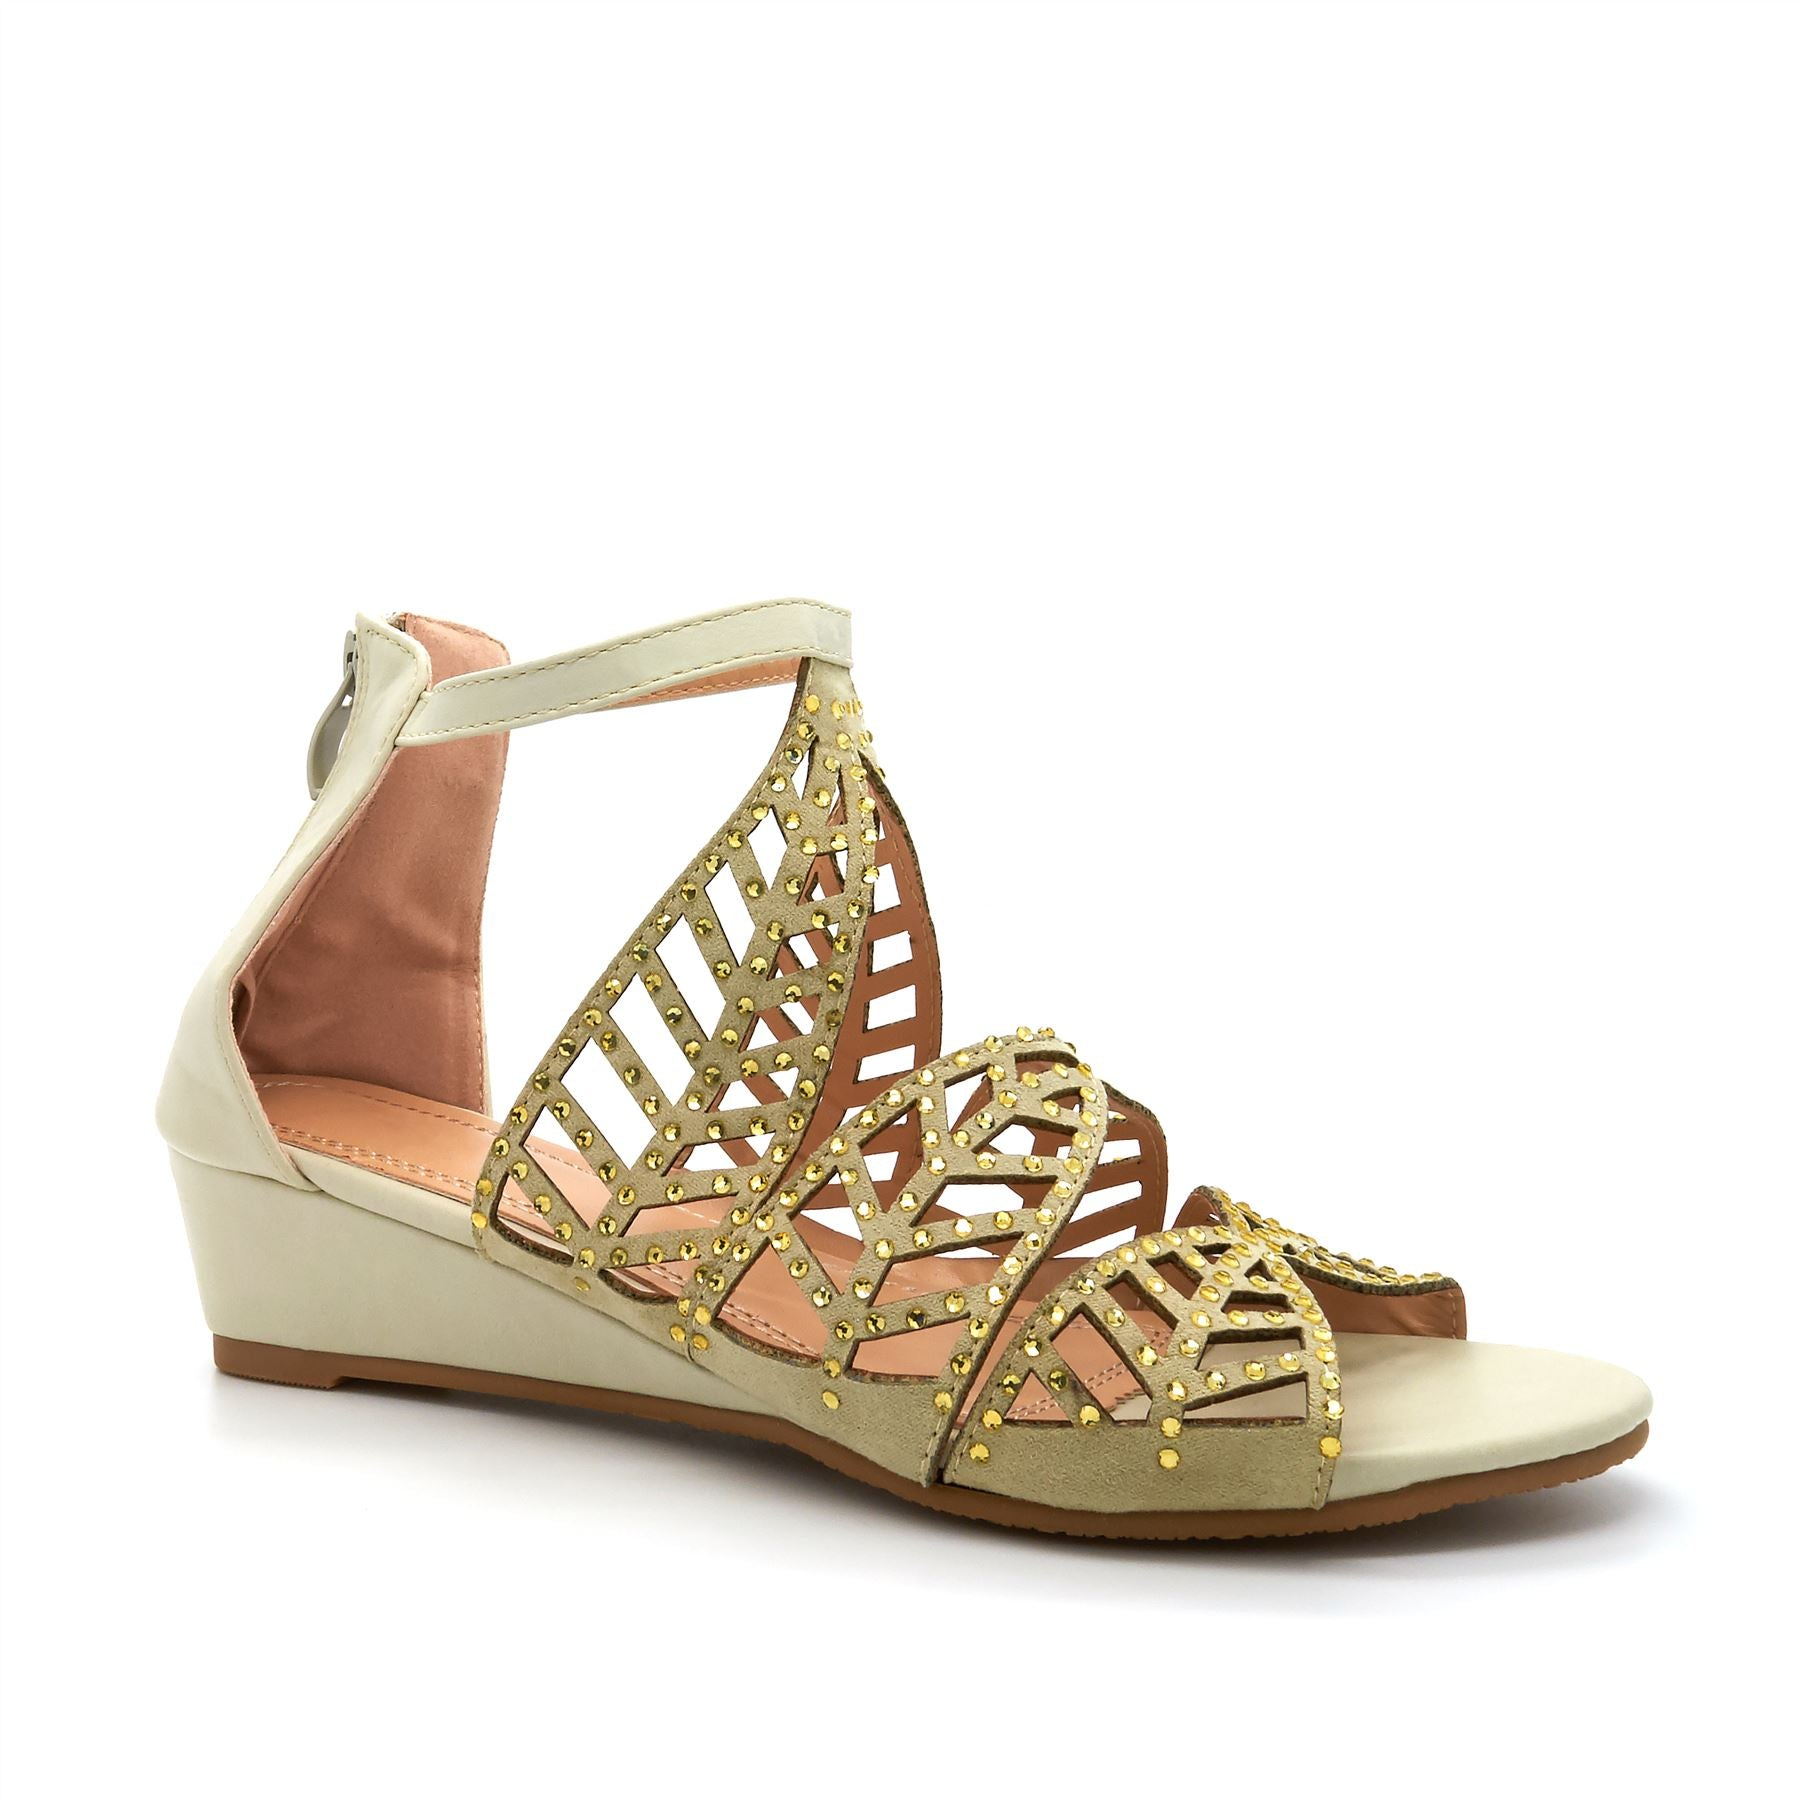 Beige Embellished Wedge Sandals